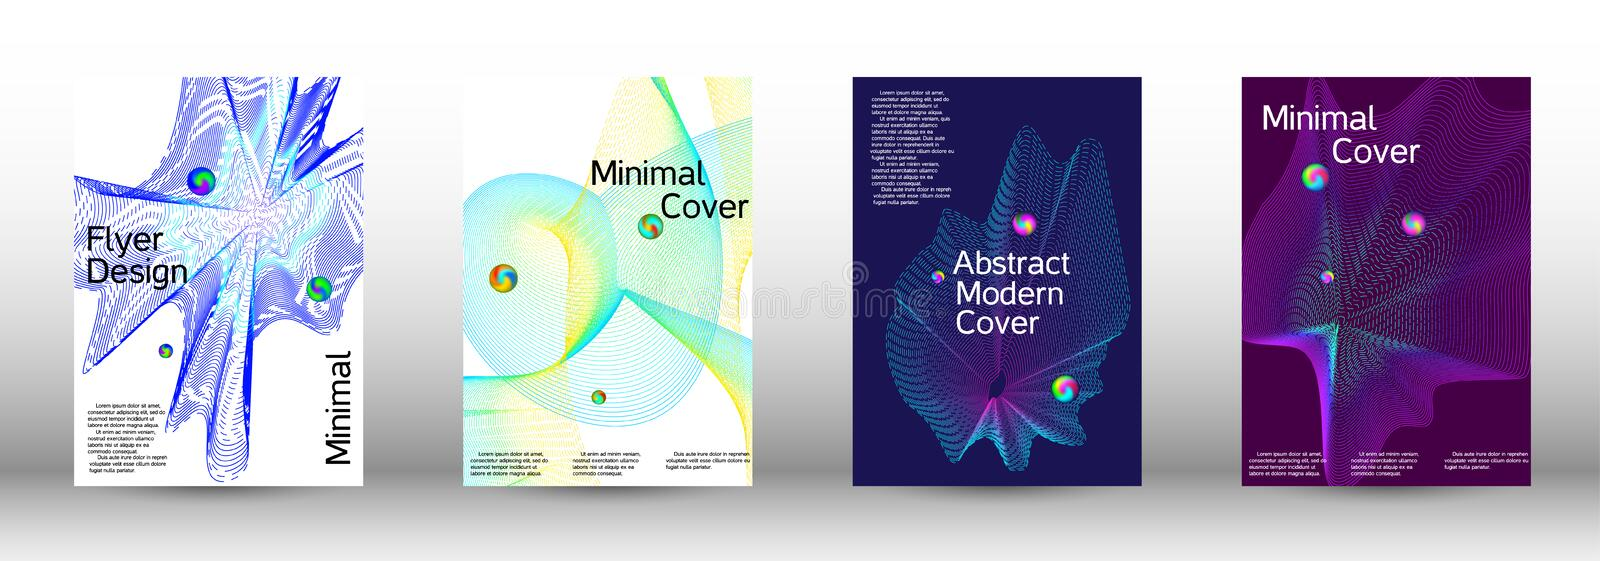 Cover design. The minimal geometric coverage. Cover design. Set of modern abstract musical backgrounds. Sound flyer for creating a fashionable  cover, banner vector illustration